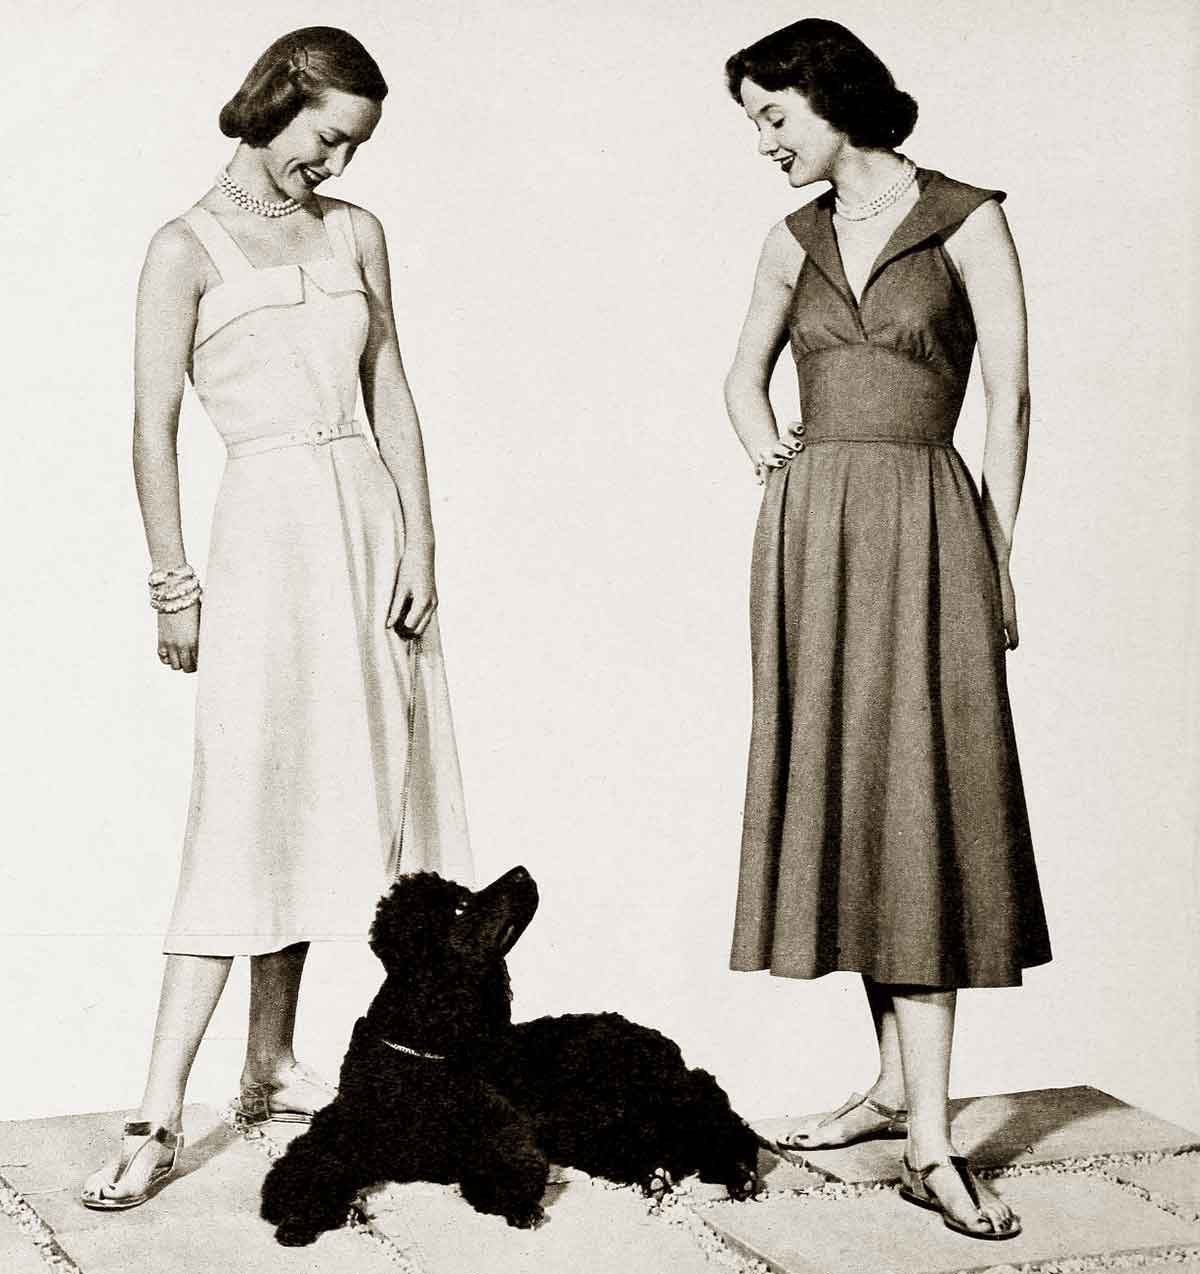 1940s-Fashion---Summer-Frock-and-Swimsuit-Styles-4